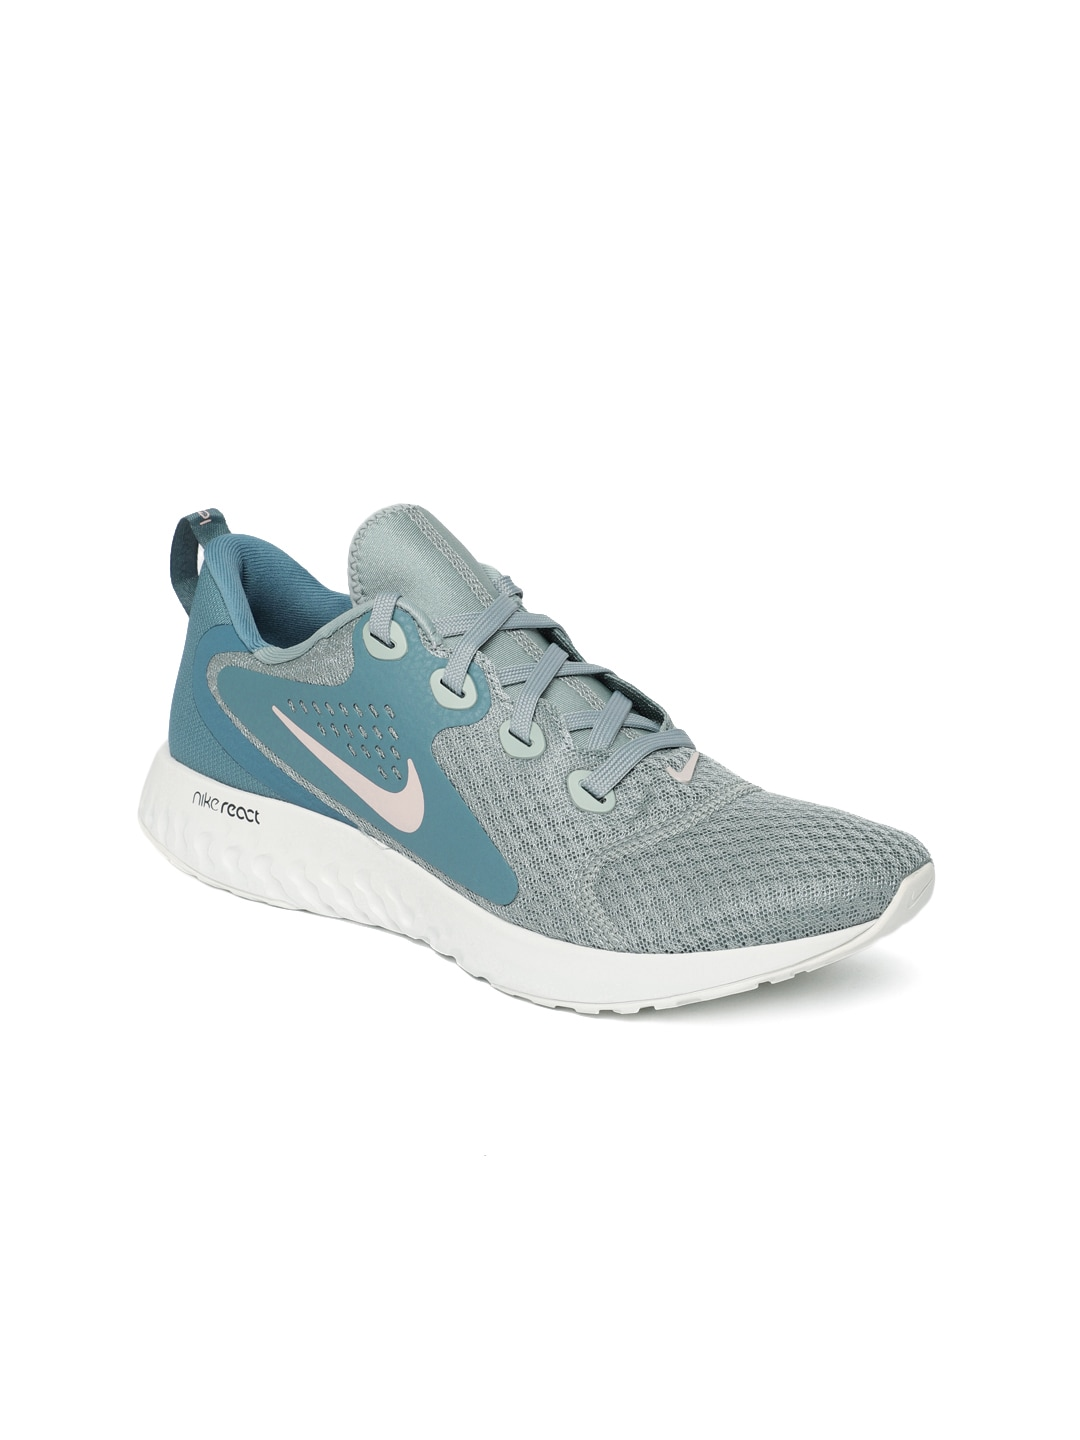 Nike Shoes - Buy Nike Shoes for Men   Women Online  ab1c4e7f9